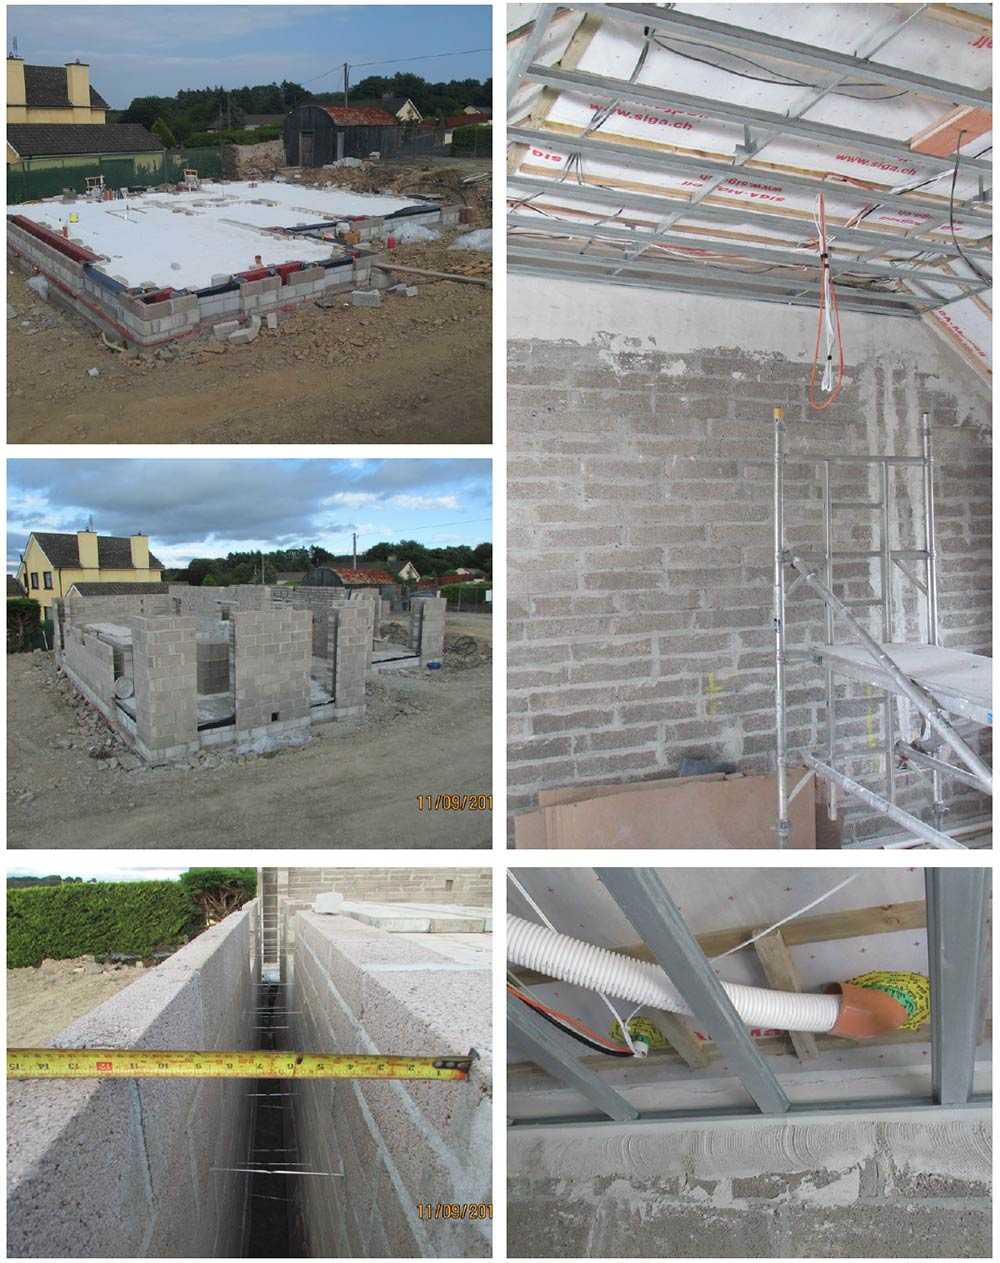 (anti clockwise from top left) the ground floor is insulated with 300mm of Xtratherm Hytherm expanded polystyrene insulation; construction of the cavity-wall ground floor, with two rows of Quinn Lite low thermal conductivity lightweight concrete blocks at the wall-floor junction; the ultra-wide 300mm wall cavity, which was fully insulated with Envirobead; a suspended ceiling system to house building services inside the Siga airtight layer; MVHR ducting in the roof, with airtightness taping where the ducting penetrates the airtightness layer.